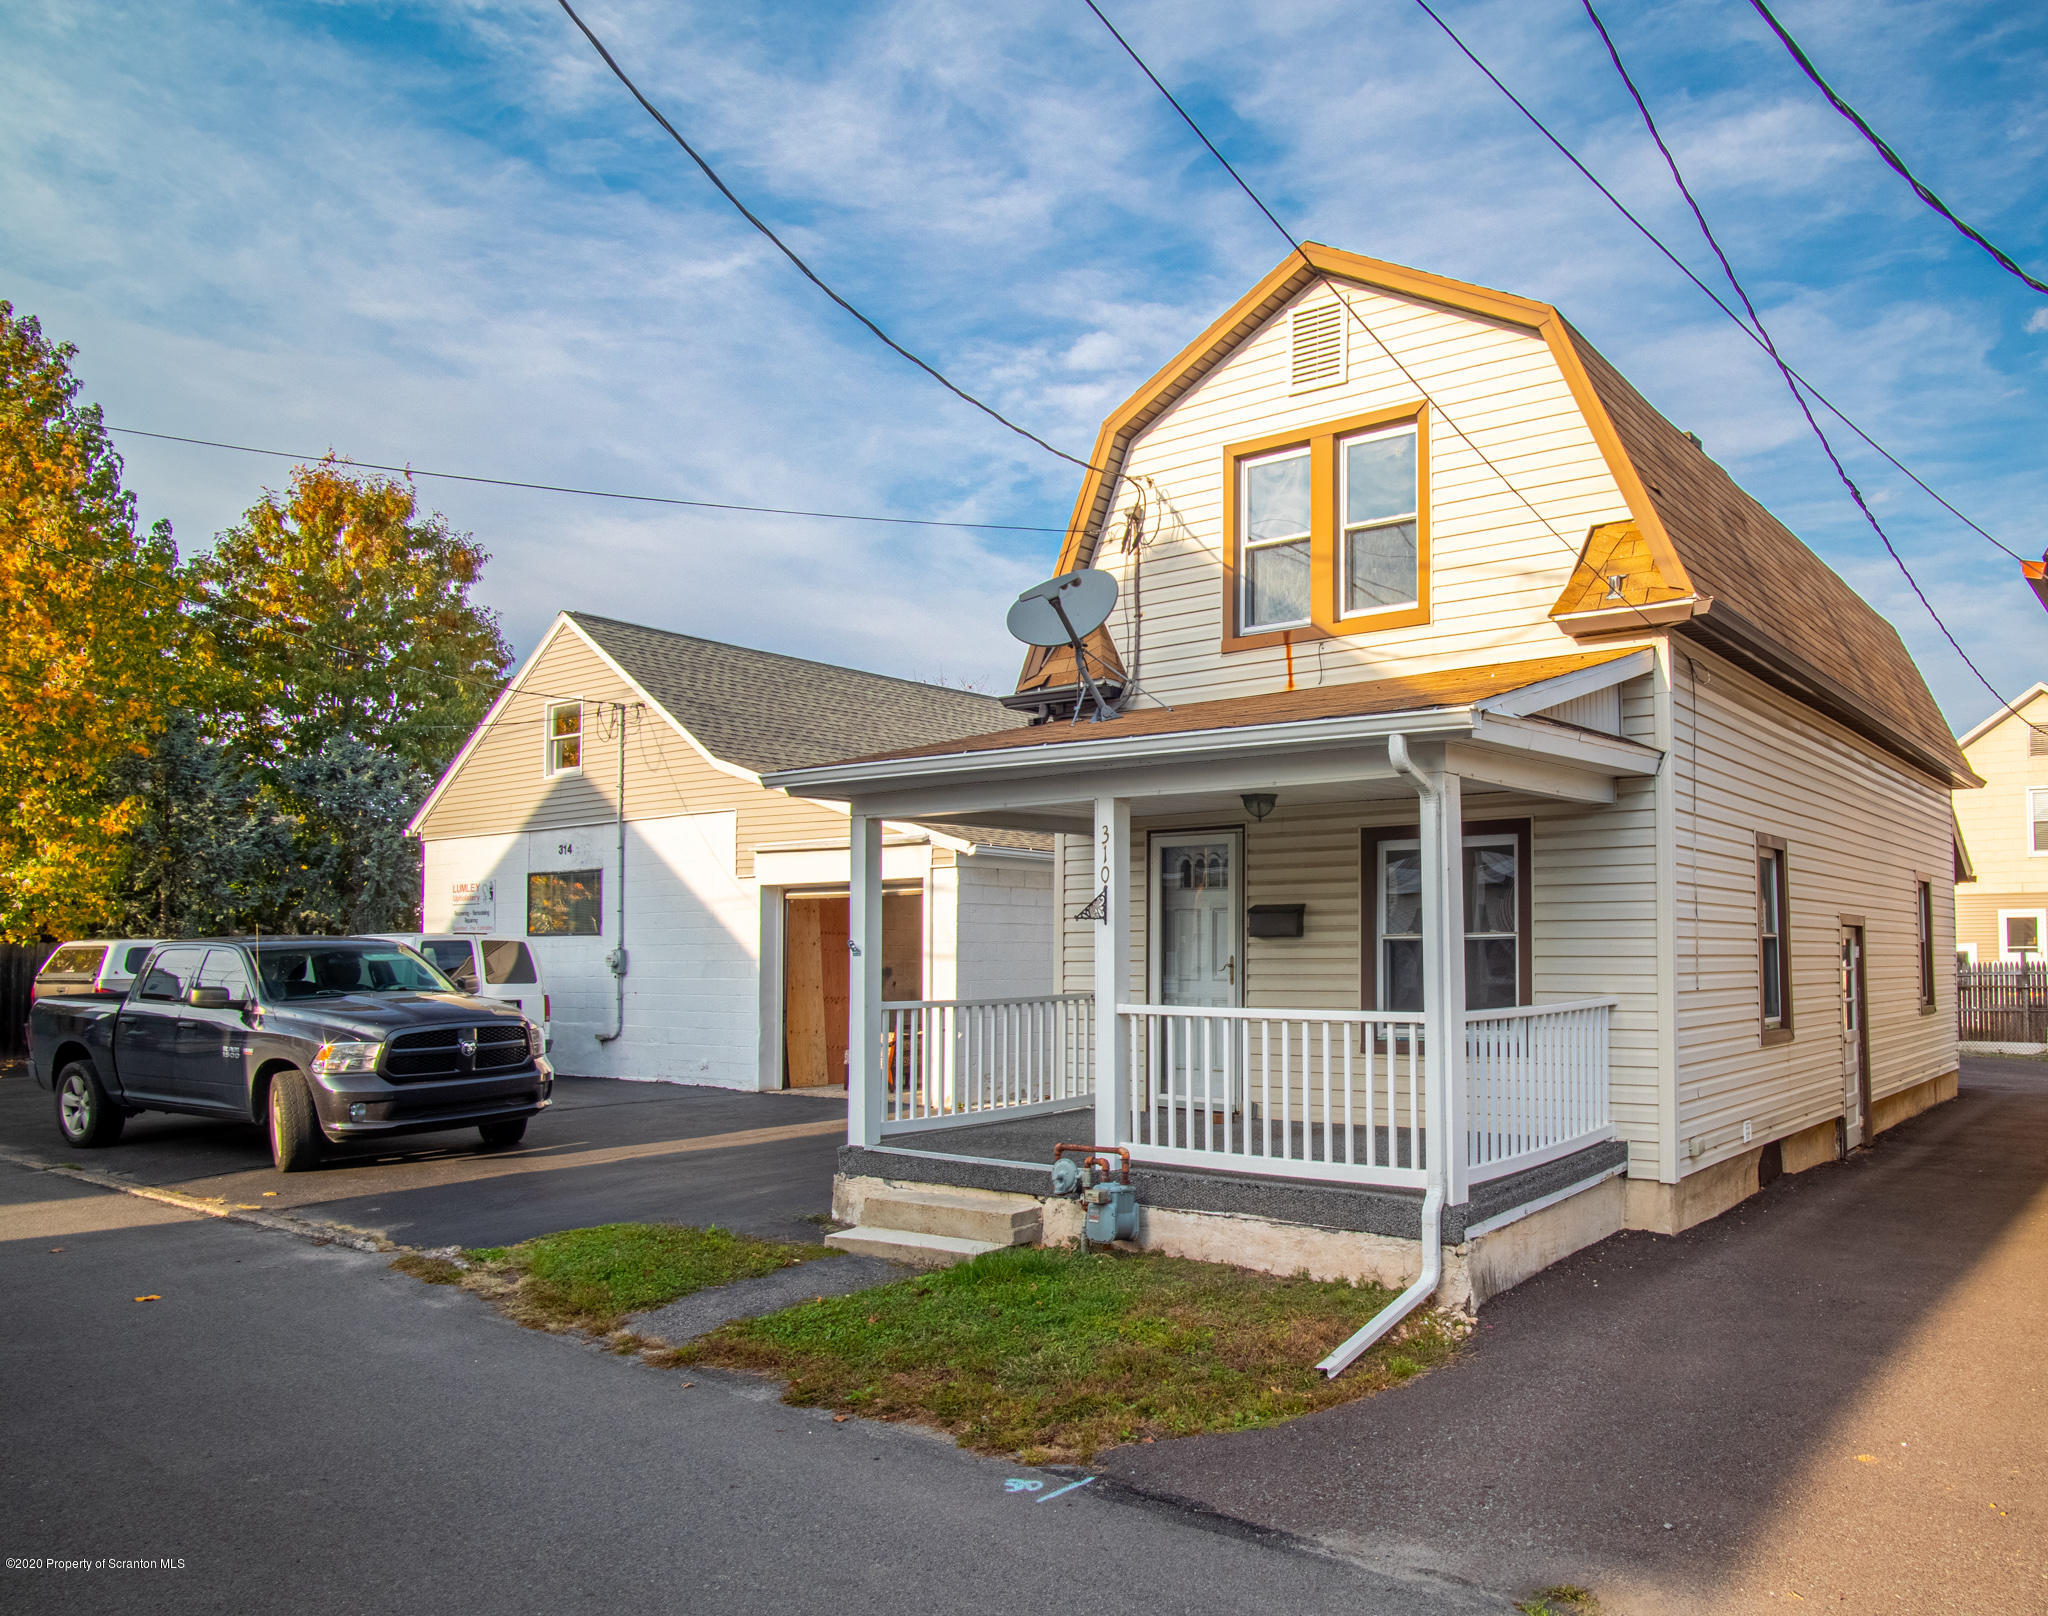 310 Berry St, West Pittston, Pennsylvania 18643, 3 Bedrooms Bedrooms, 5 Rooms Rooms,1 BathroomBathrooms,Single Family,For Sale,Berry,20-4533